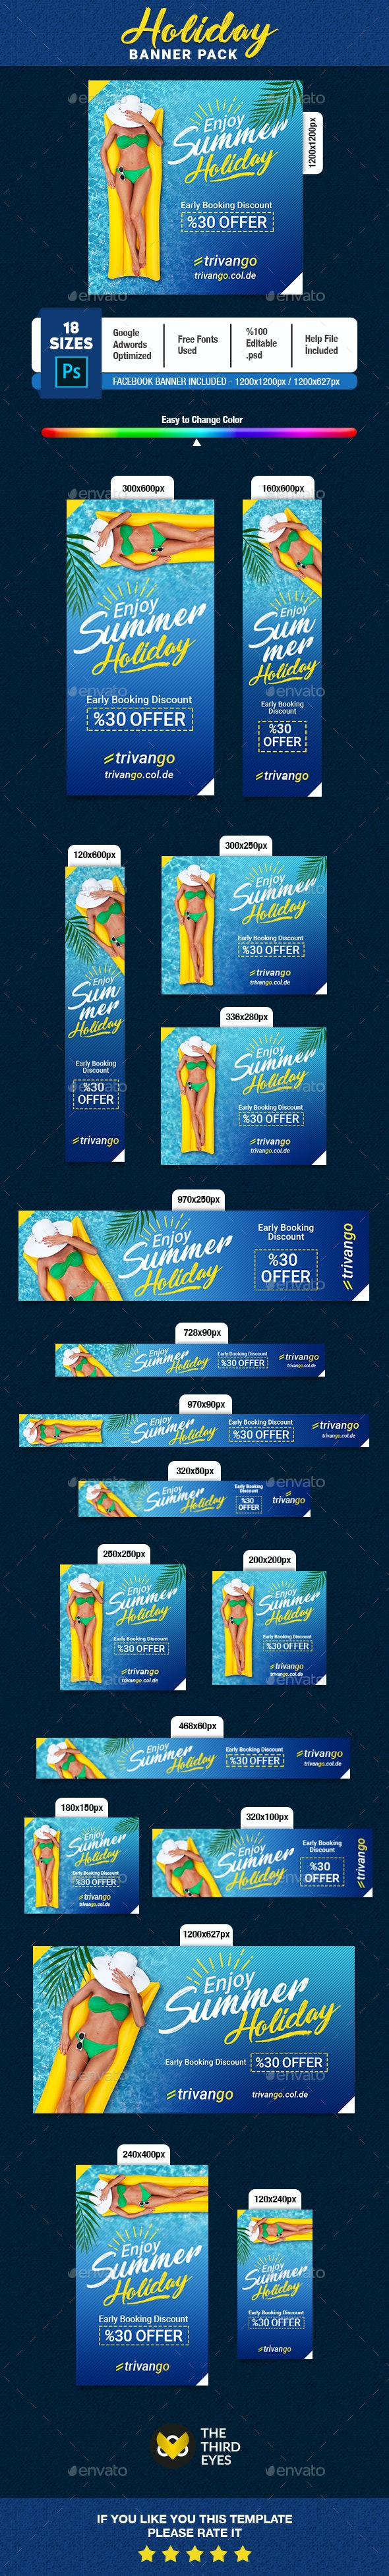 Holiday Banner - Banners & Ads Web Elements